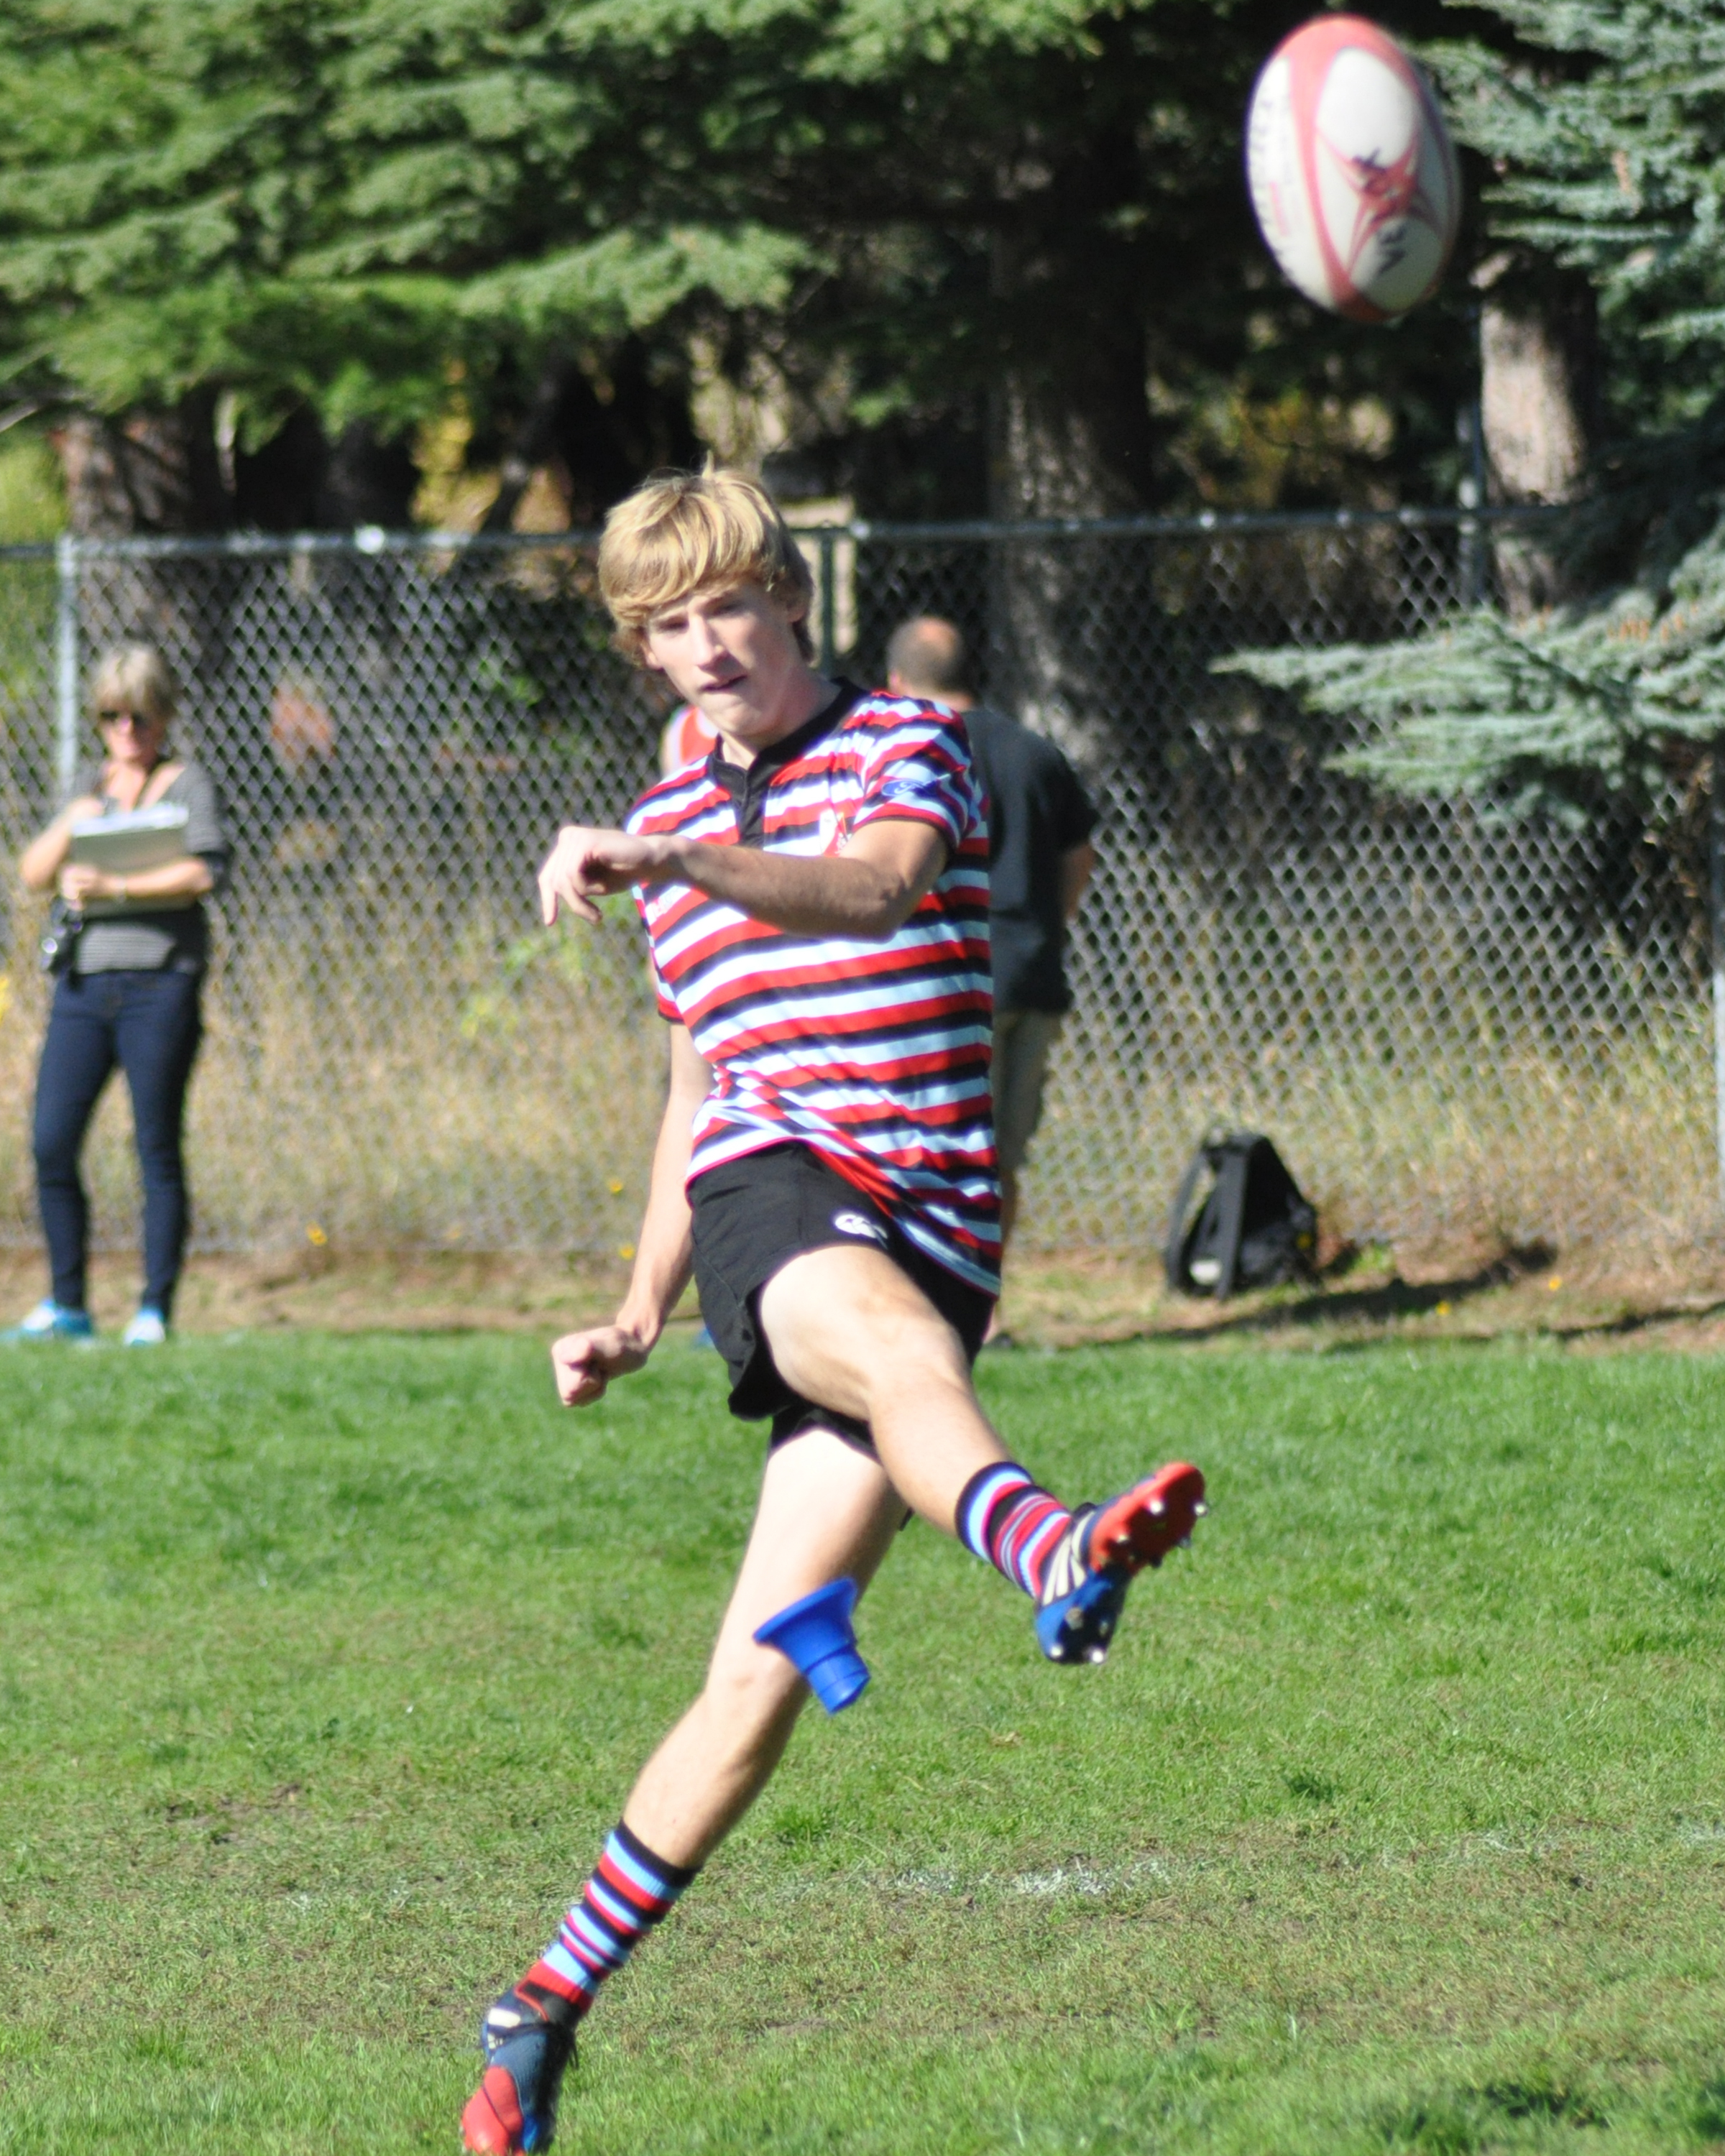 School Rugby Takes Over - Image 1